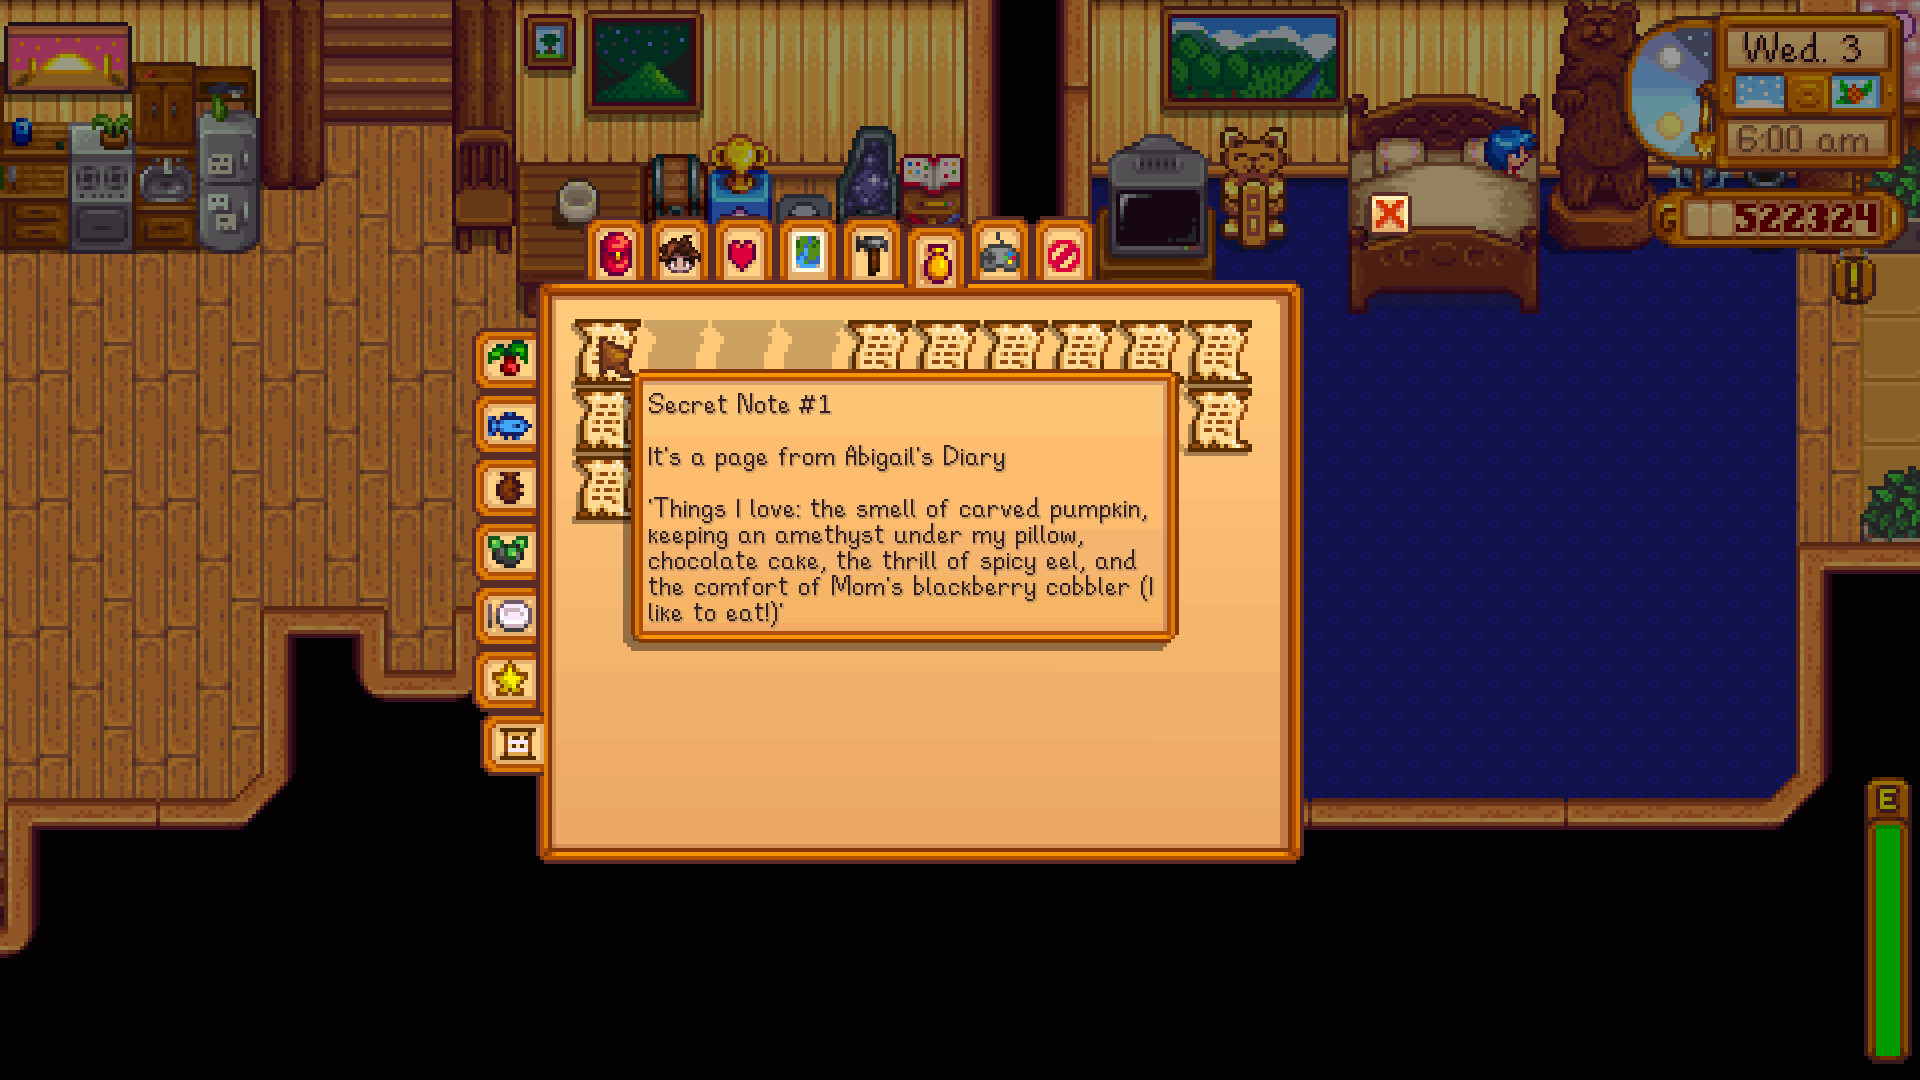 Chocolate Cake Stardew Valley  Secret Notes What They Say Rewards they Give Stardew